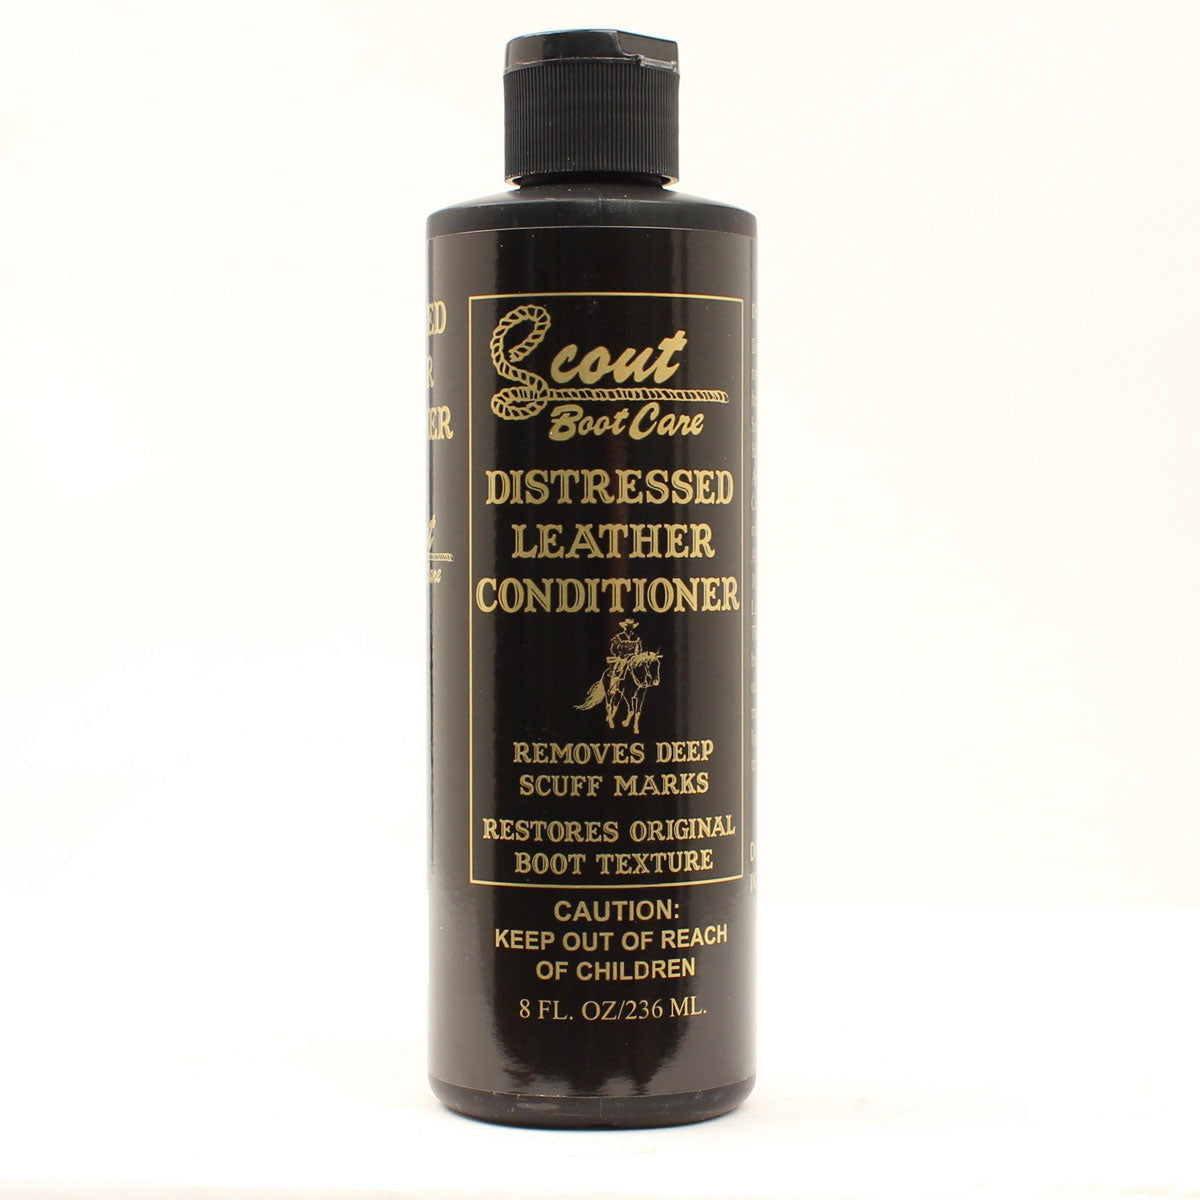 Scout Distressed Leather Conditioner